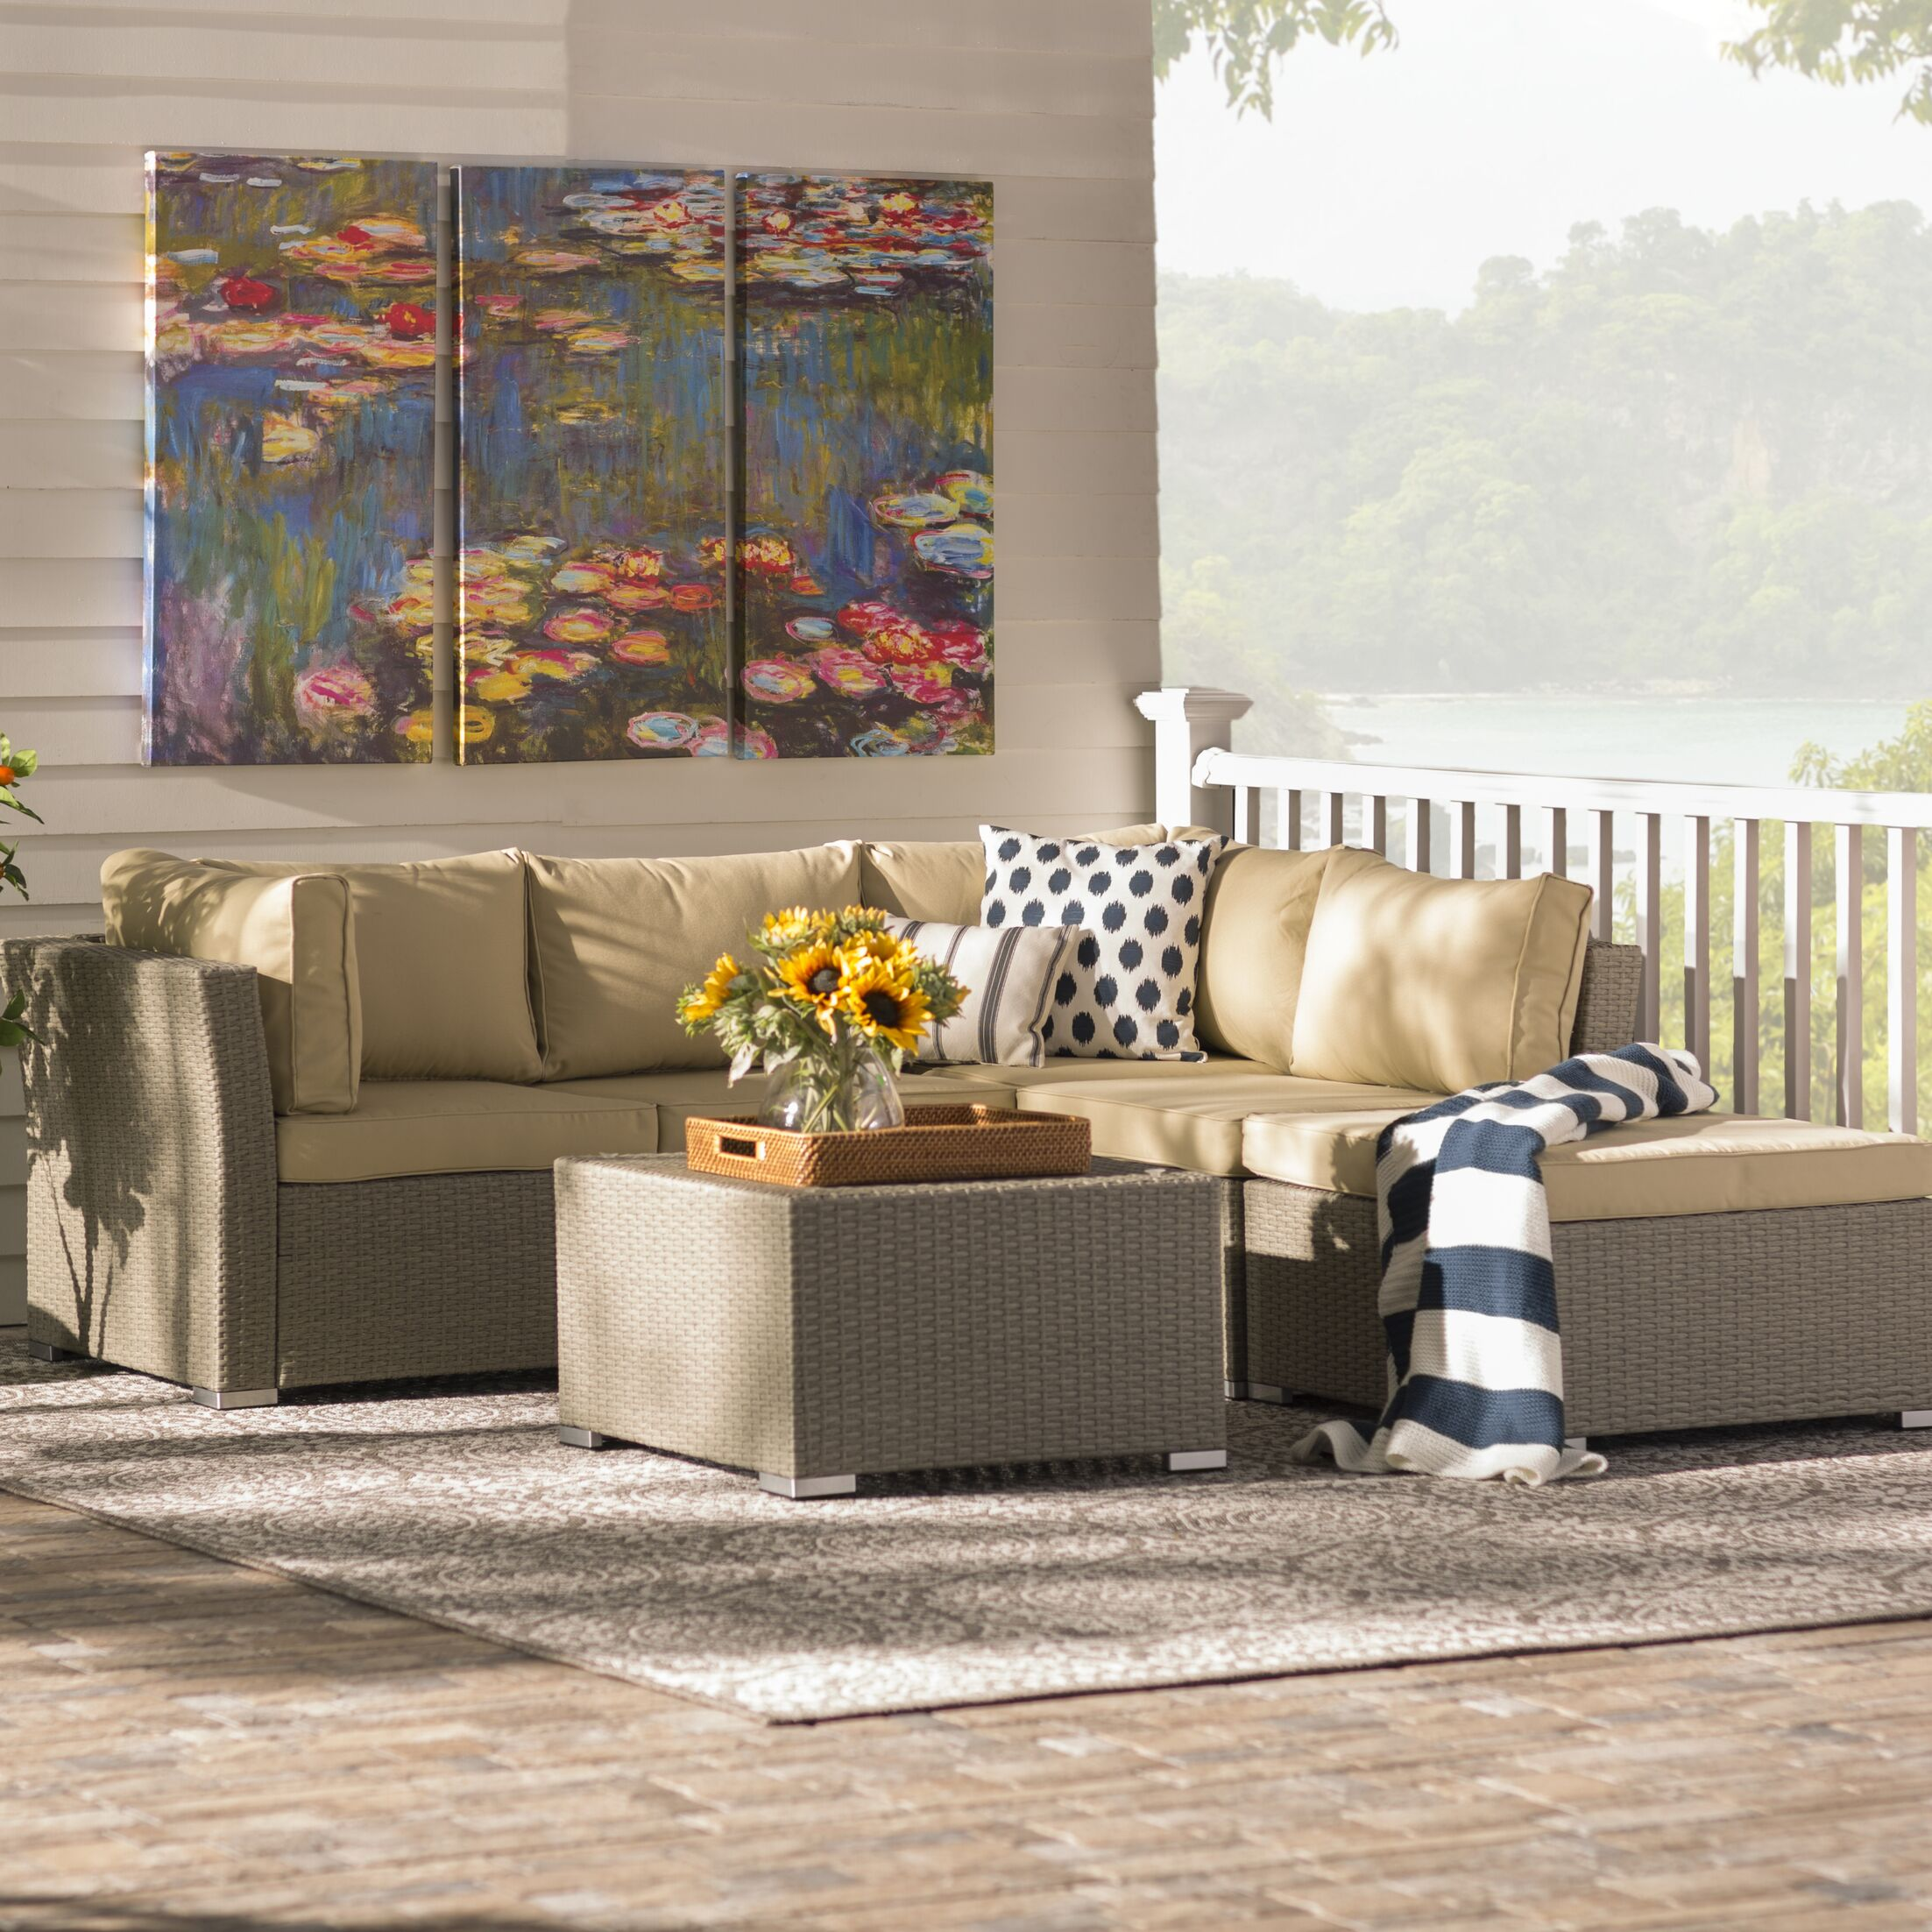 Morrissey 5 Piece Sectional Set with Cushions Color: Natural Rustic Light